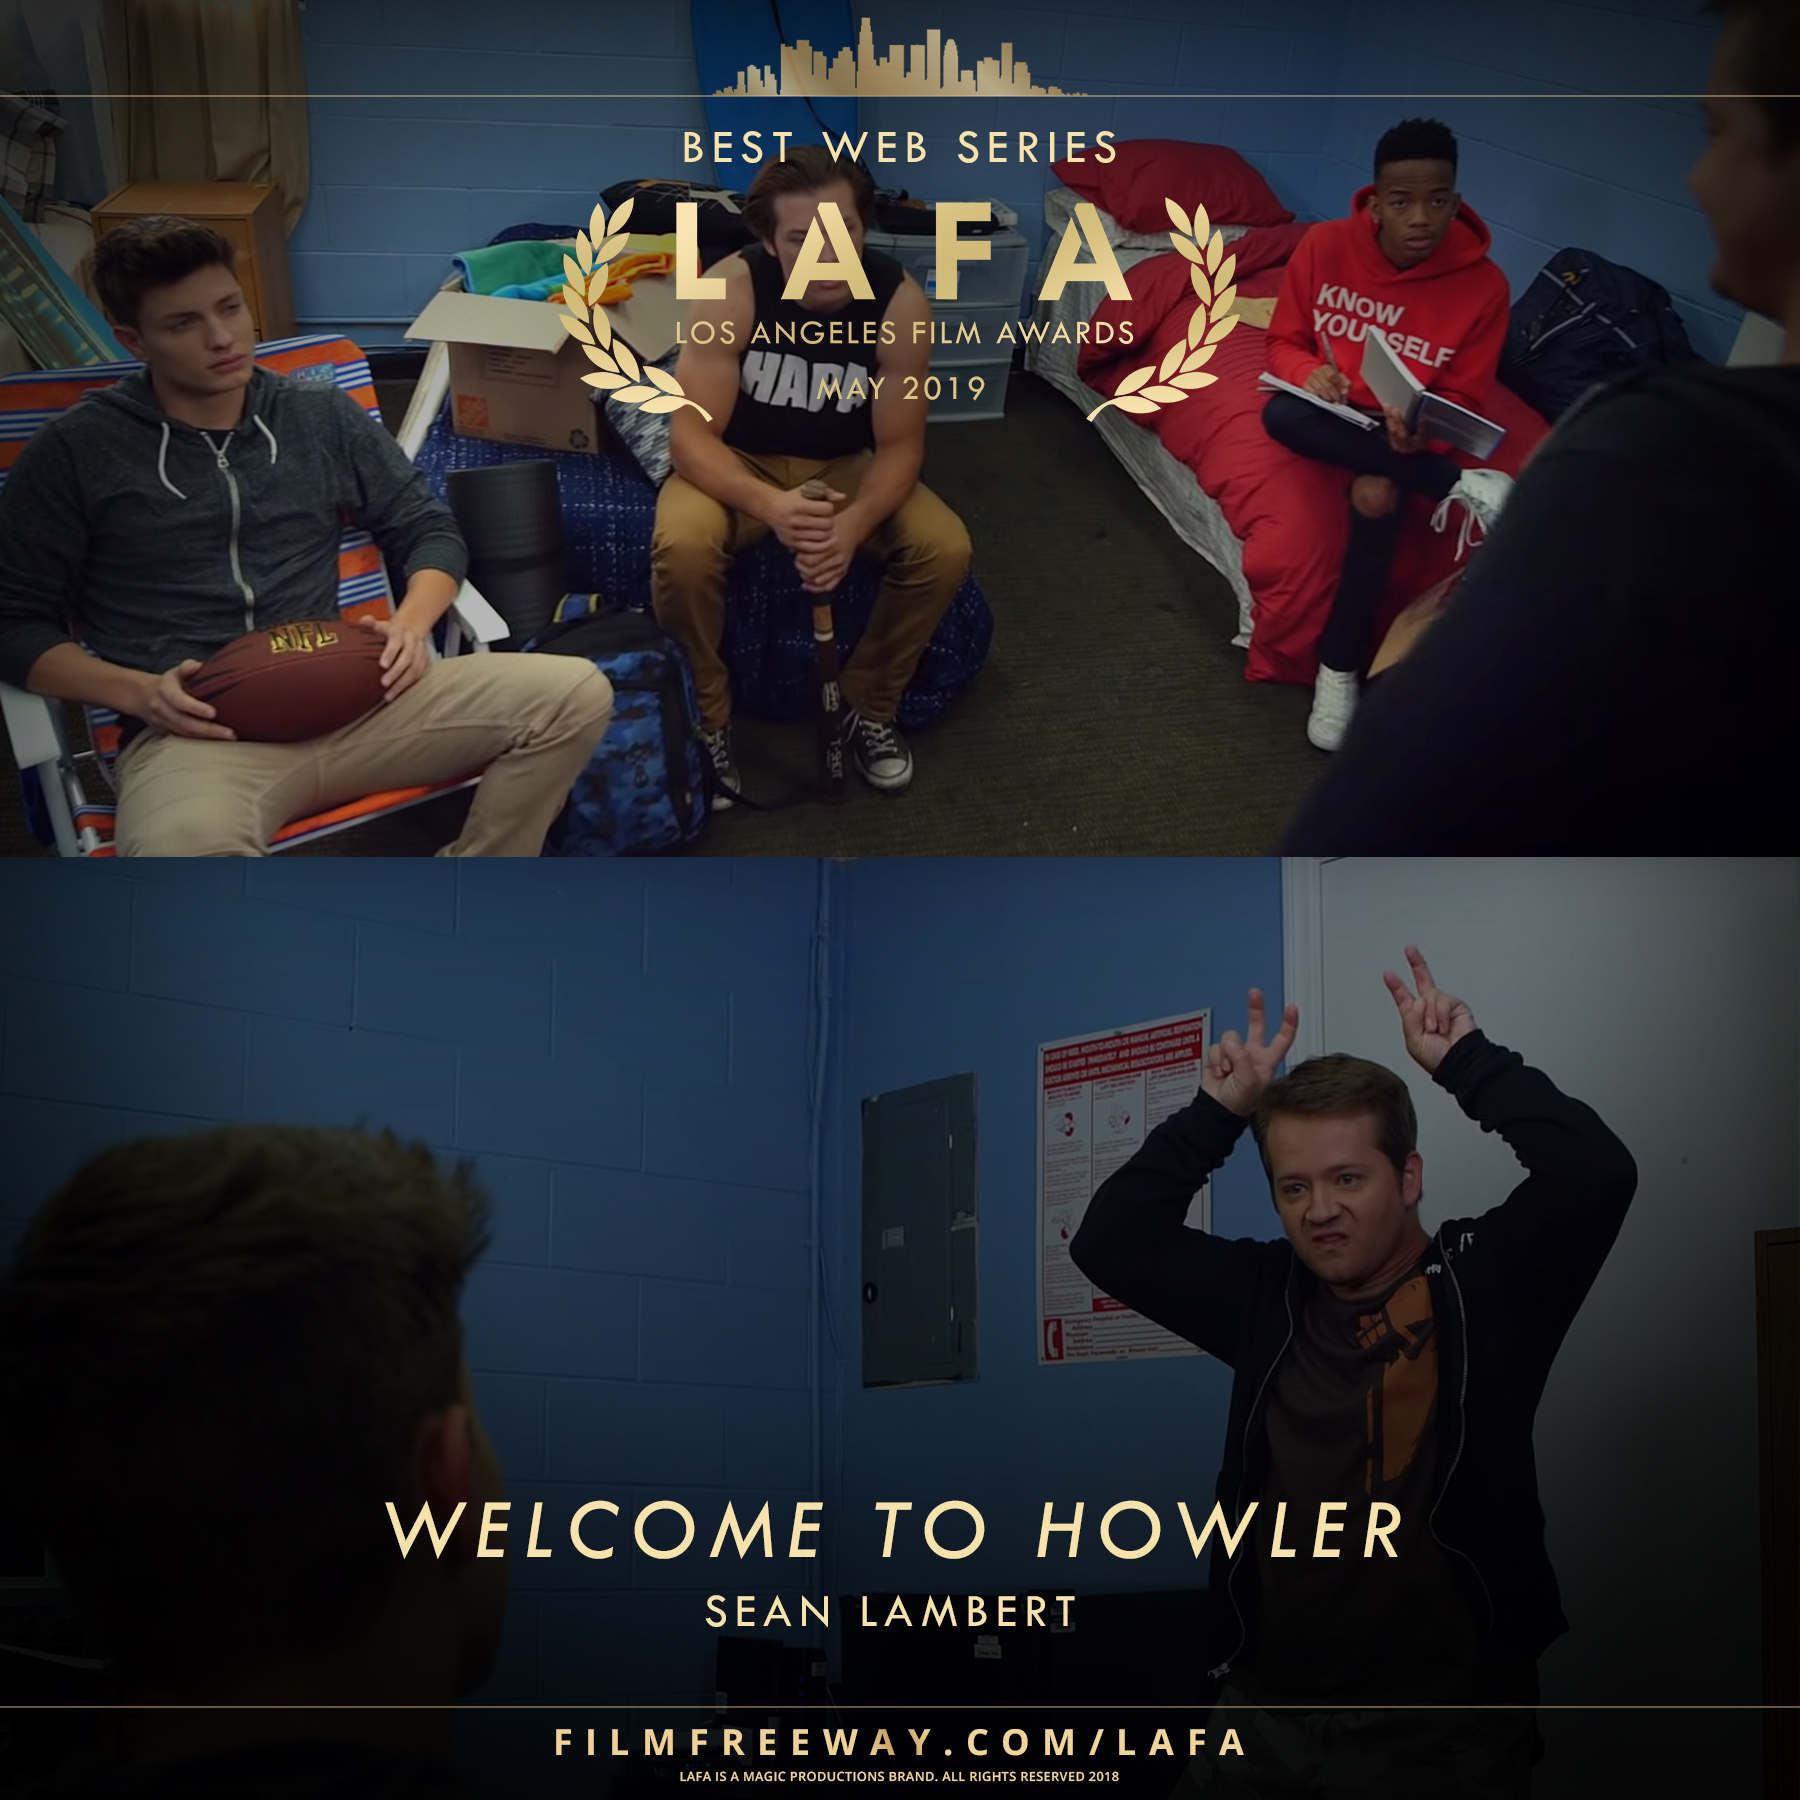 WELCOME TO HOWLER design